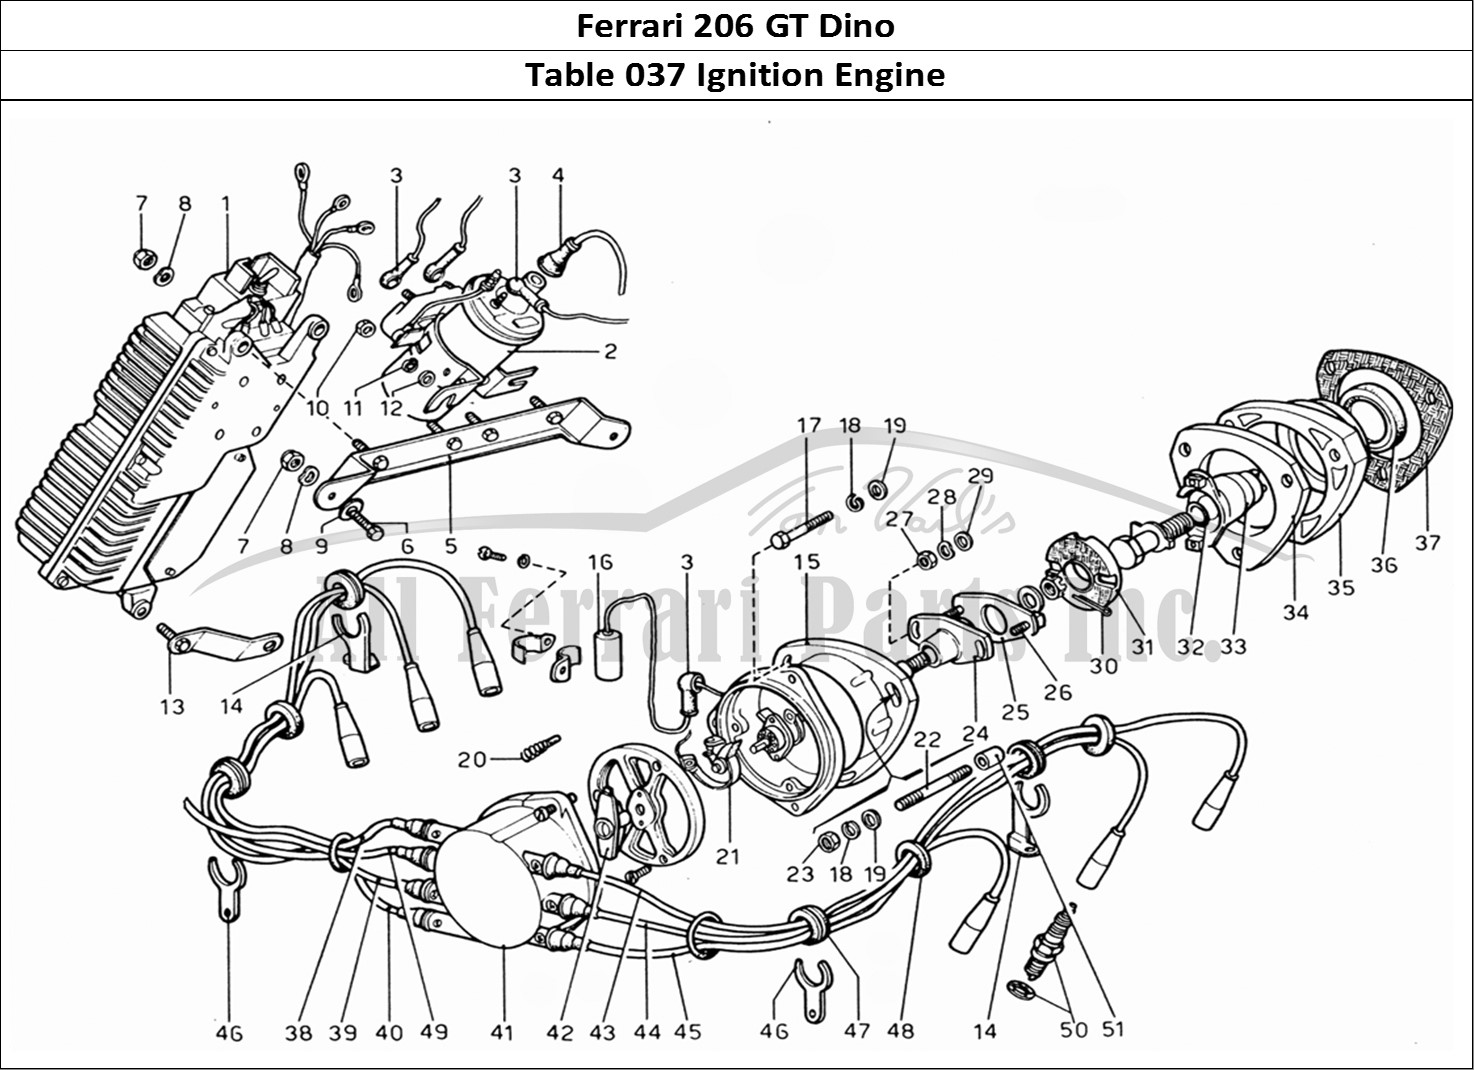 Buy Original Ferrari 206 Gt Dino 037 Ignition Engine Parts Diagram Mechanical Table